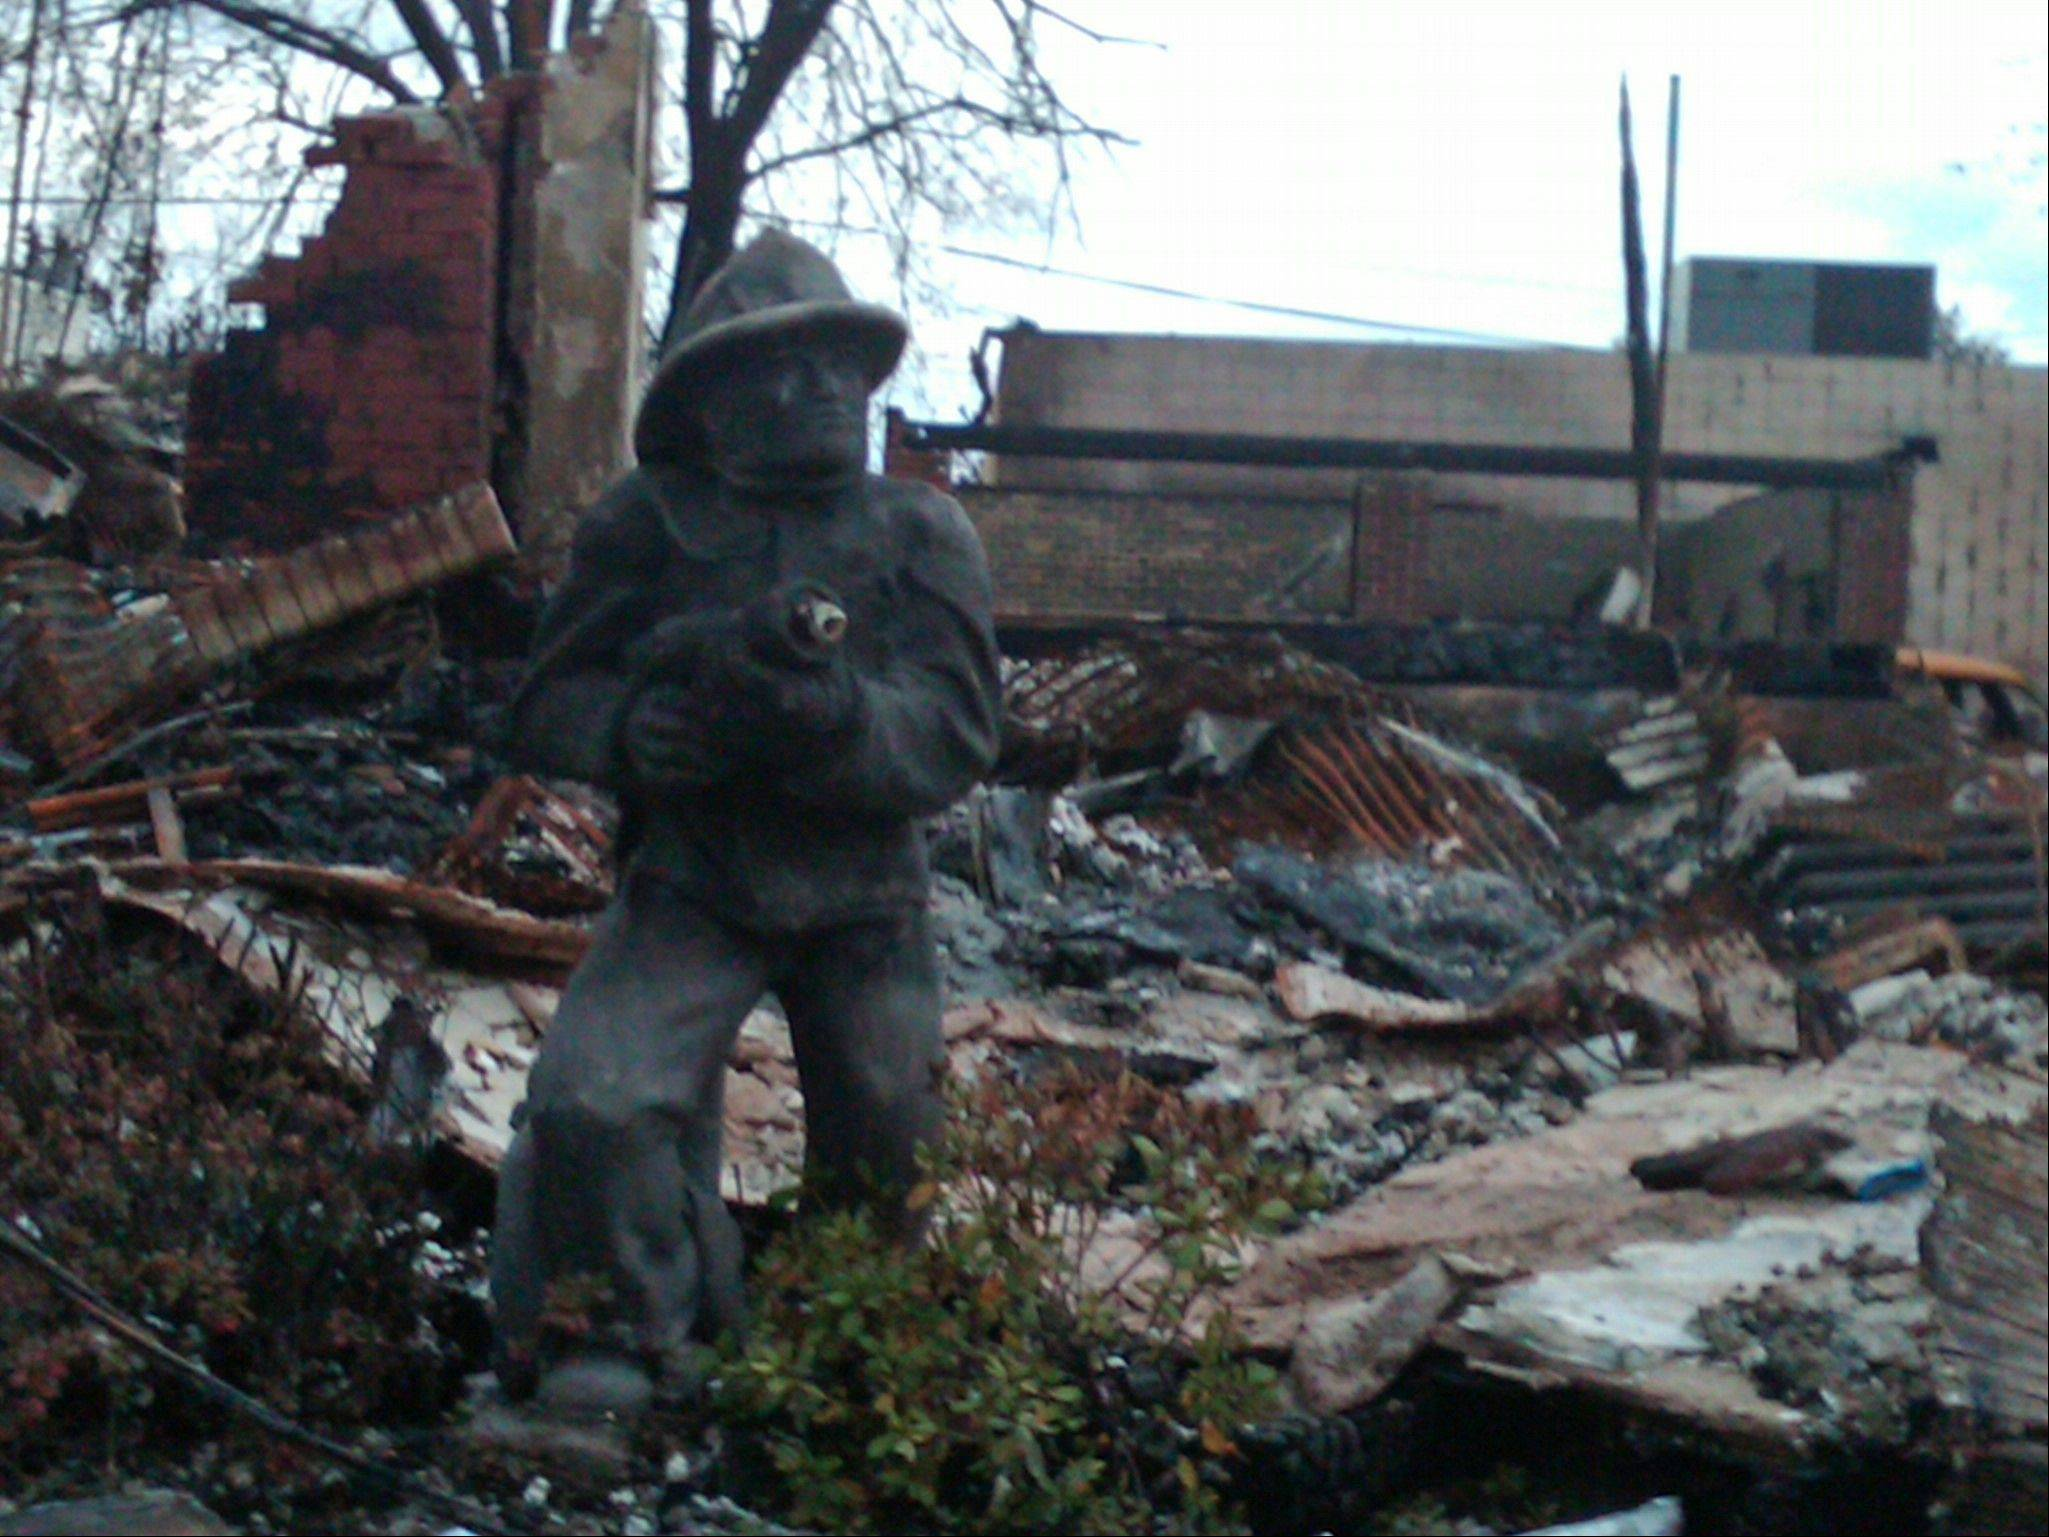 The charred remains of a firefighter statuette stands guard in front of a Belle Harbor house that burned down during Superstorm Sandy. The fire spread to 14 houses on the same street, demolishing them and forcing frightened residents to flee the fire at the height of the storm. They used a surfboard and kayaks to ferry women, children and older people to safety.